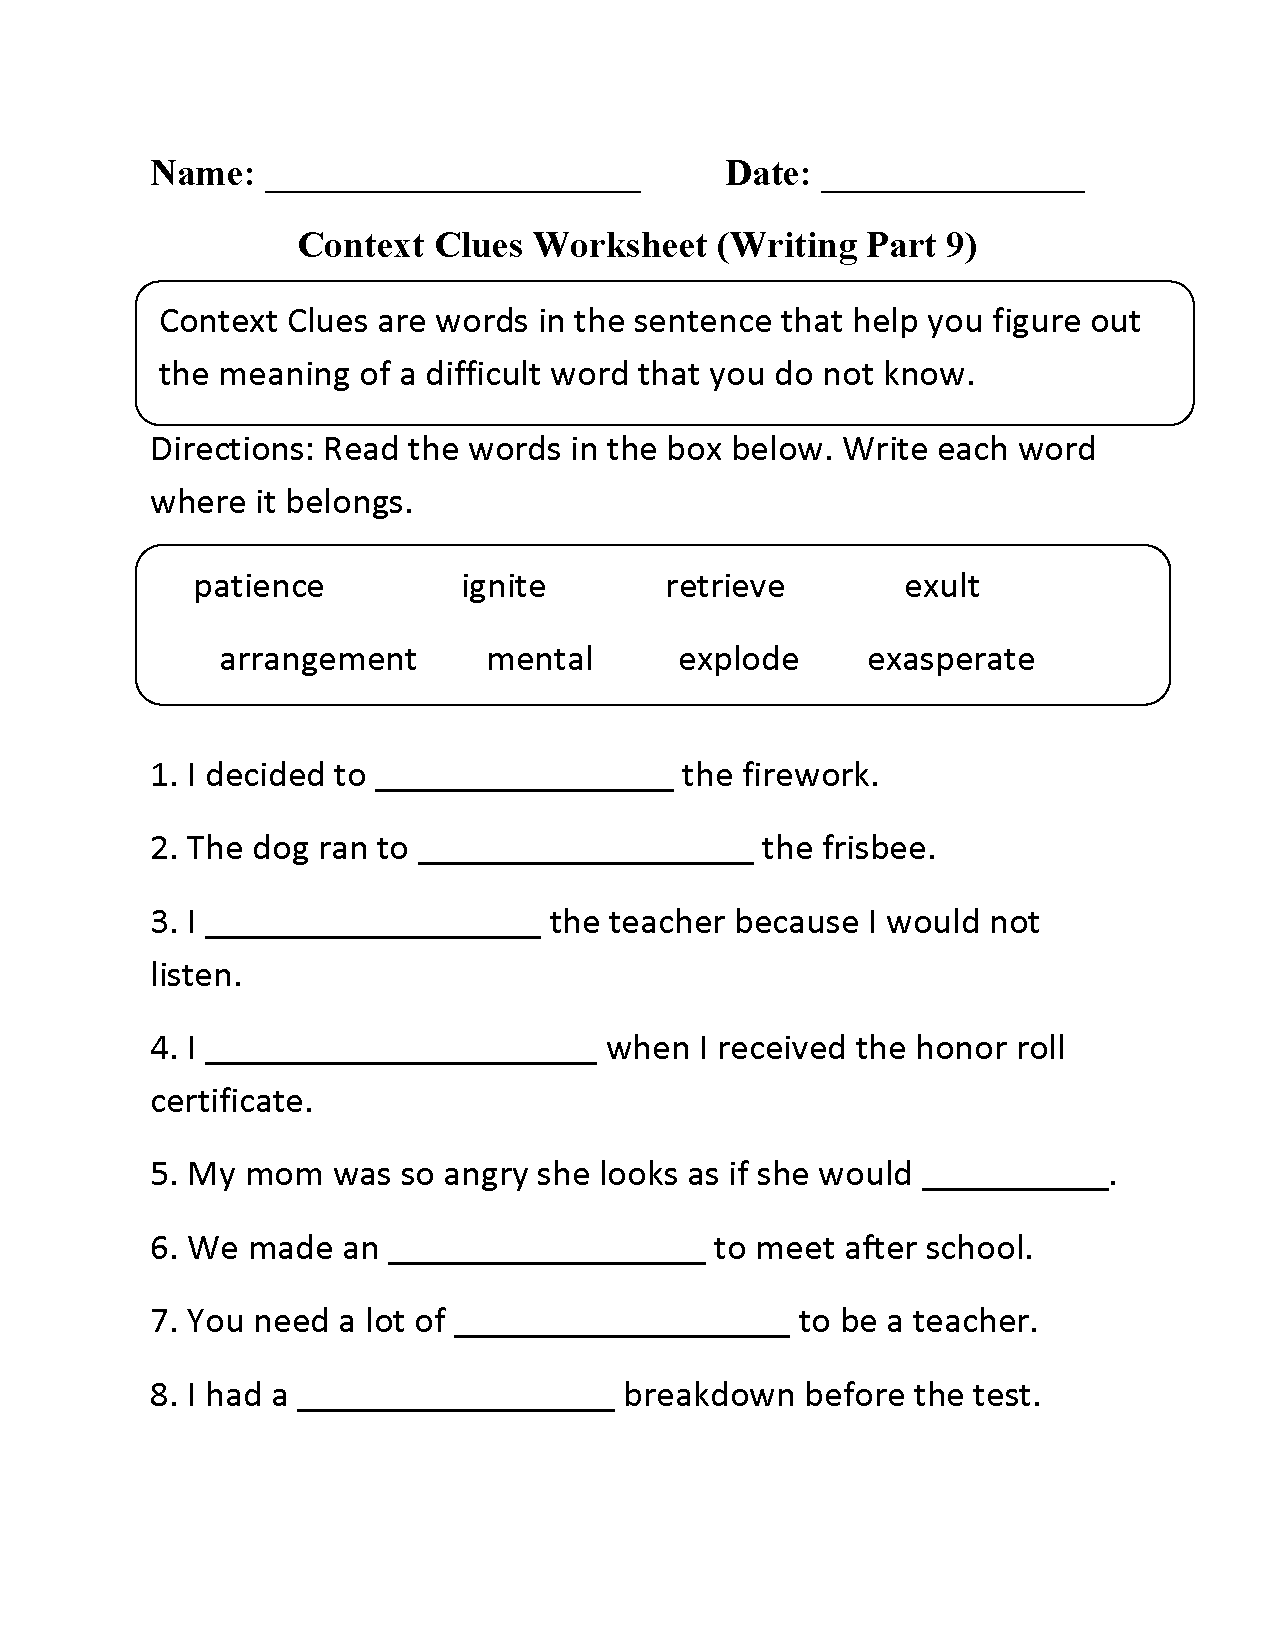 Weirdmailus  Unique Englishlinxcom  Context Clues Worksheets With Excellent Context Clues Worksheet Writing Part  Intermediate With Extraordinary Grade  Math Patterning Worksheets Also Percent Of Worksheets In Addition Rhyming Words For Kids Worksheets And Number Word Search Worksheets As Well As Printable Numeracy Worksheets Additionally Grade  Pattern Worksheets From Englishlinxcom With Weirdmailus  Excellent Englishlinxcom  Context Clues Worksheets With Extraordinary Context Clues Worksheet Writing Part  Intermediate And Unique Grade  Math Patterning Worksheets Also Percent Of Worksheets In Addition Rhyming Words For Kids Worksheets From Englishlinxcom